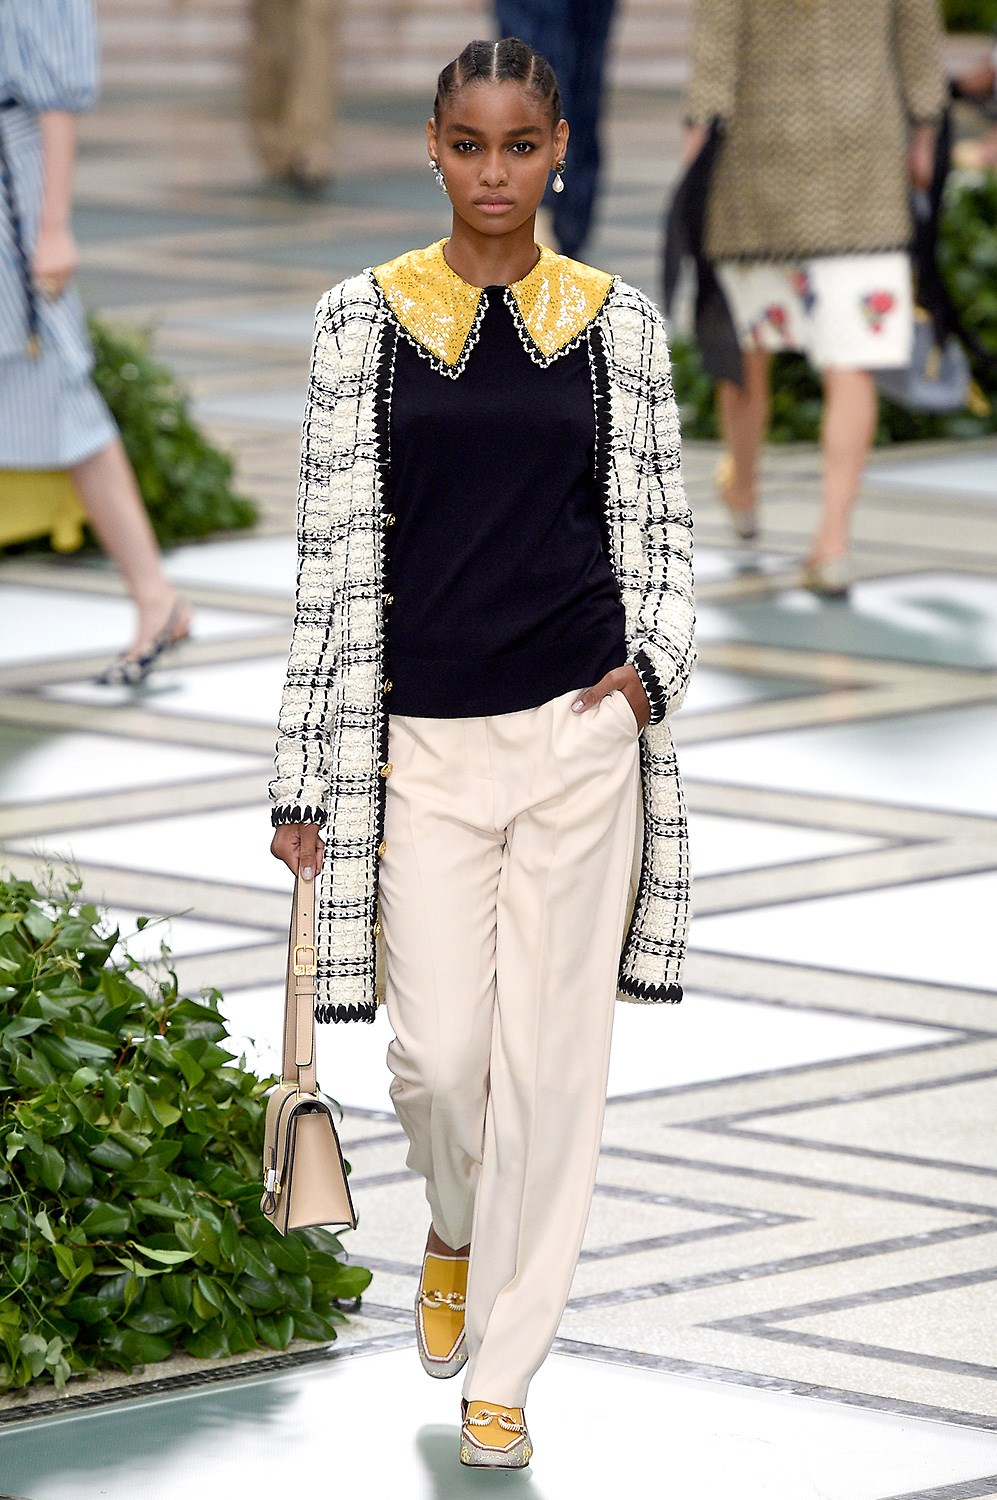 Tory Burch Spring 2020 Fashion Show